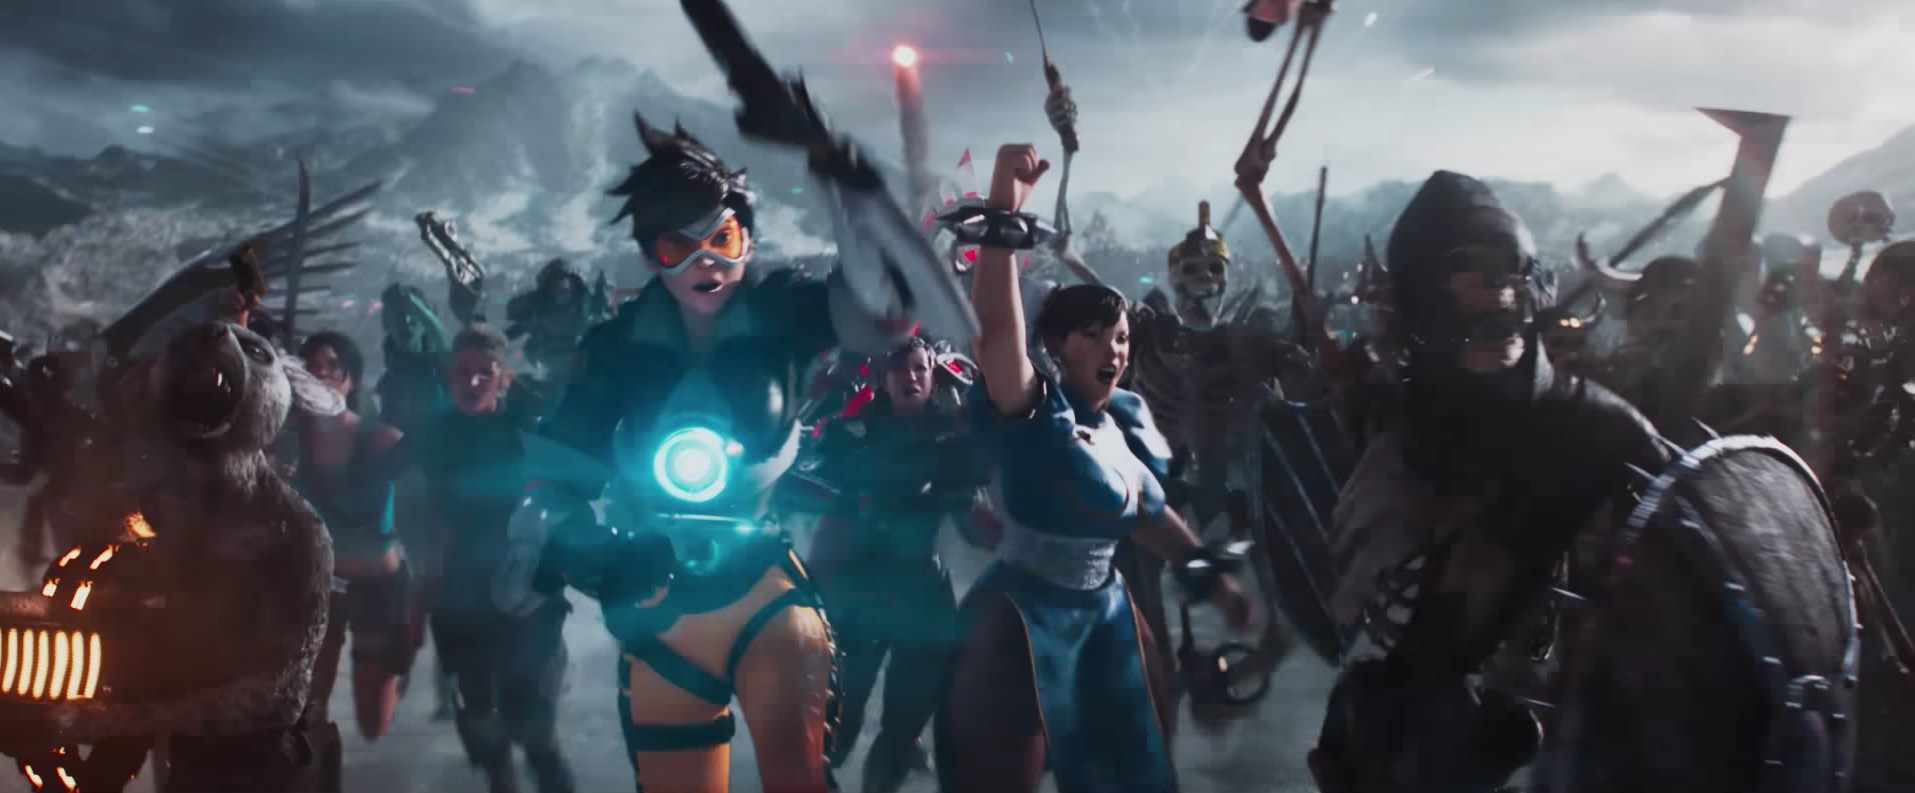 Anime Characters In Ready Player One : The new ready player one trailer is filled with video game